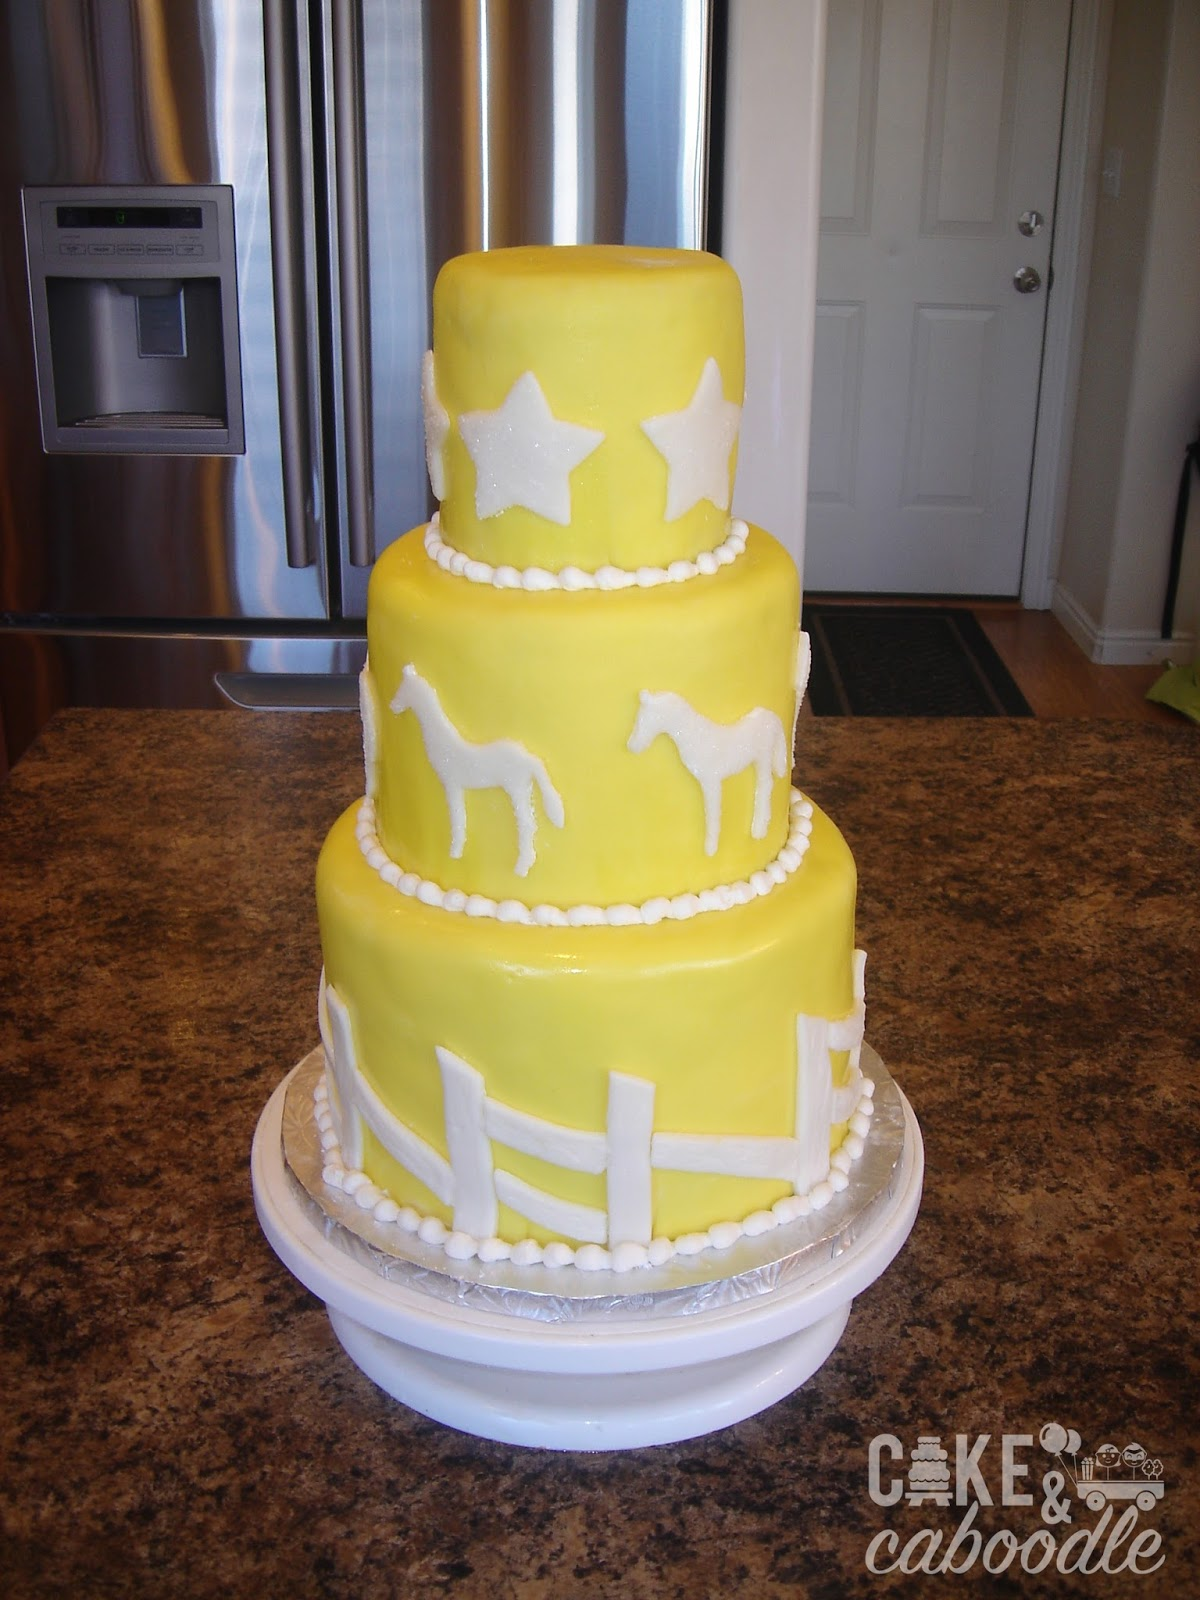 Horse Cake | Cake and Caboodle